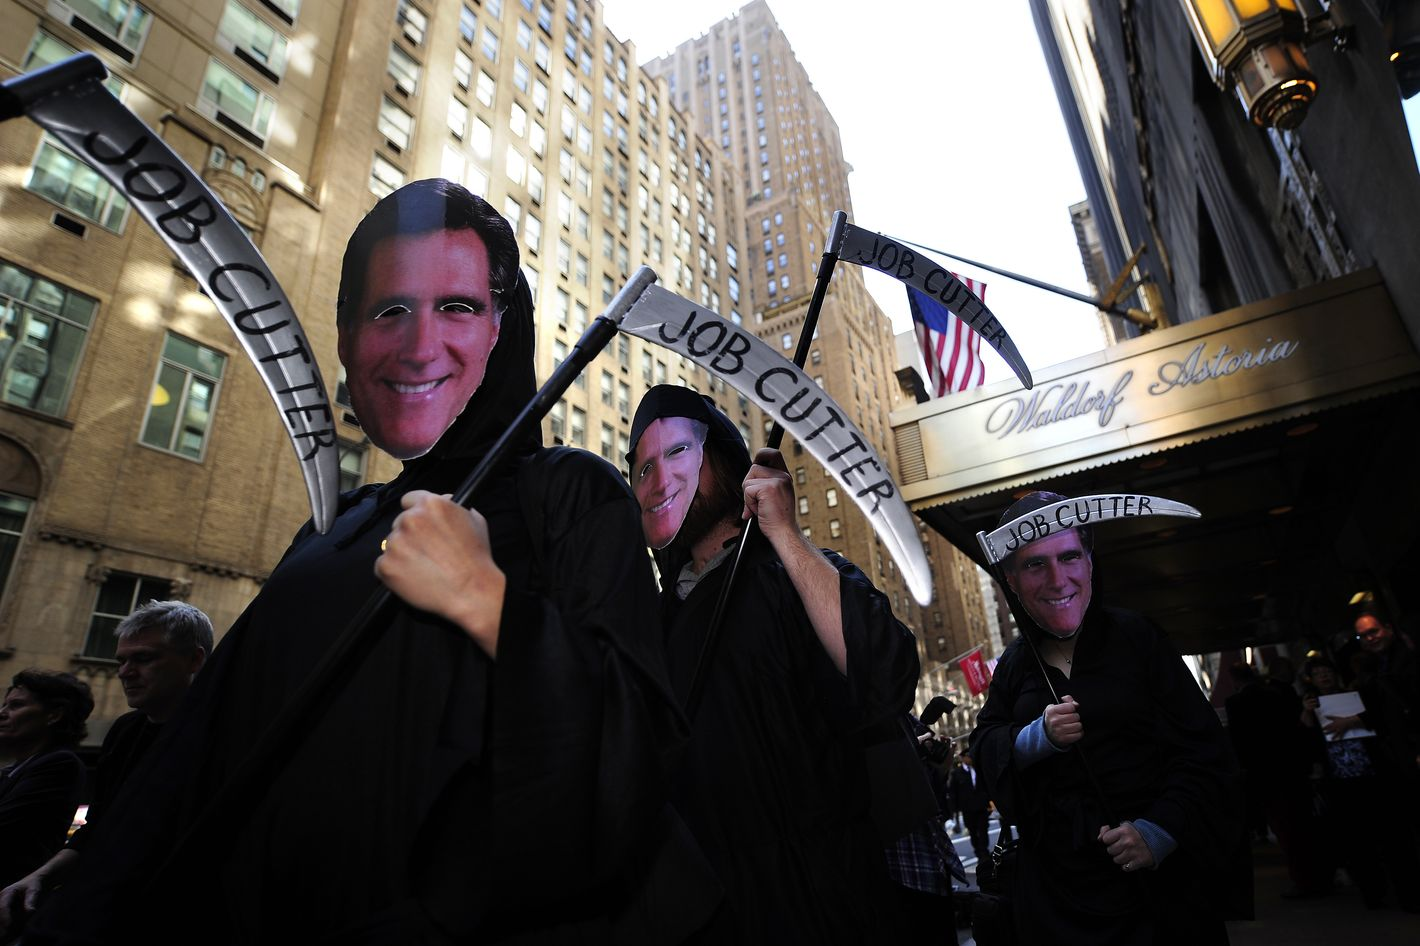 Occupy Wall Street protesters, dressed as billionaires, stage a demonstration against US Republican presidential candidate Mitt Romney in front of the Waldorf Astoria hotel as Romney holds a campaign fundraiser inside the hotel, in New York, March 14, 2012. AFP PHOTO/Emmanuel Dunand (Photo credit should read EMMANUEL DUNAND/AFP/Getty Images)